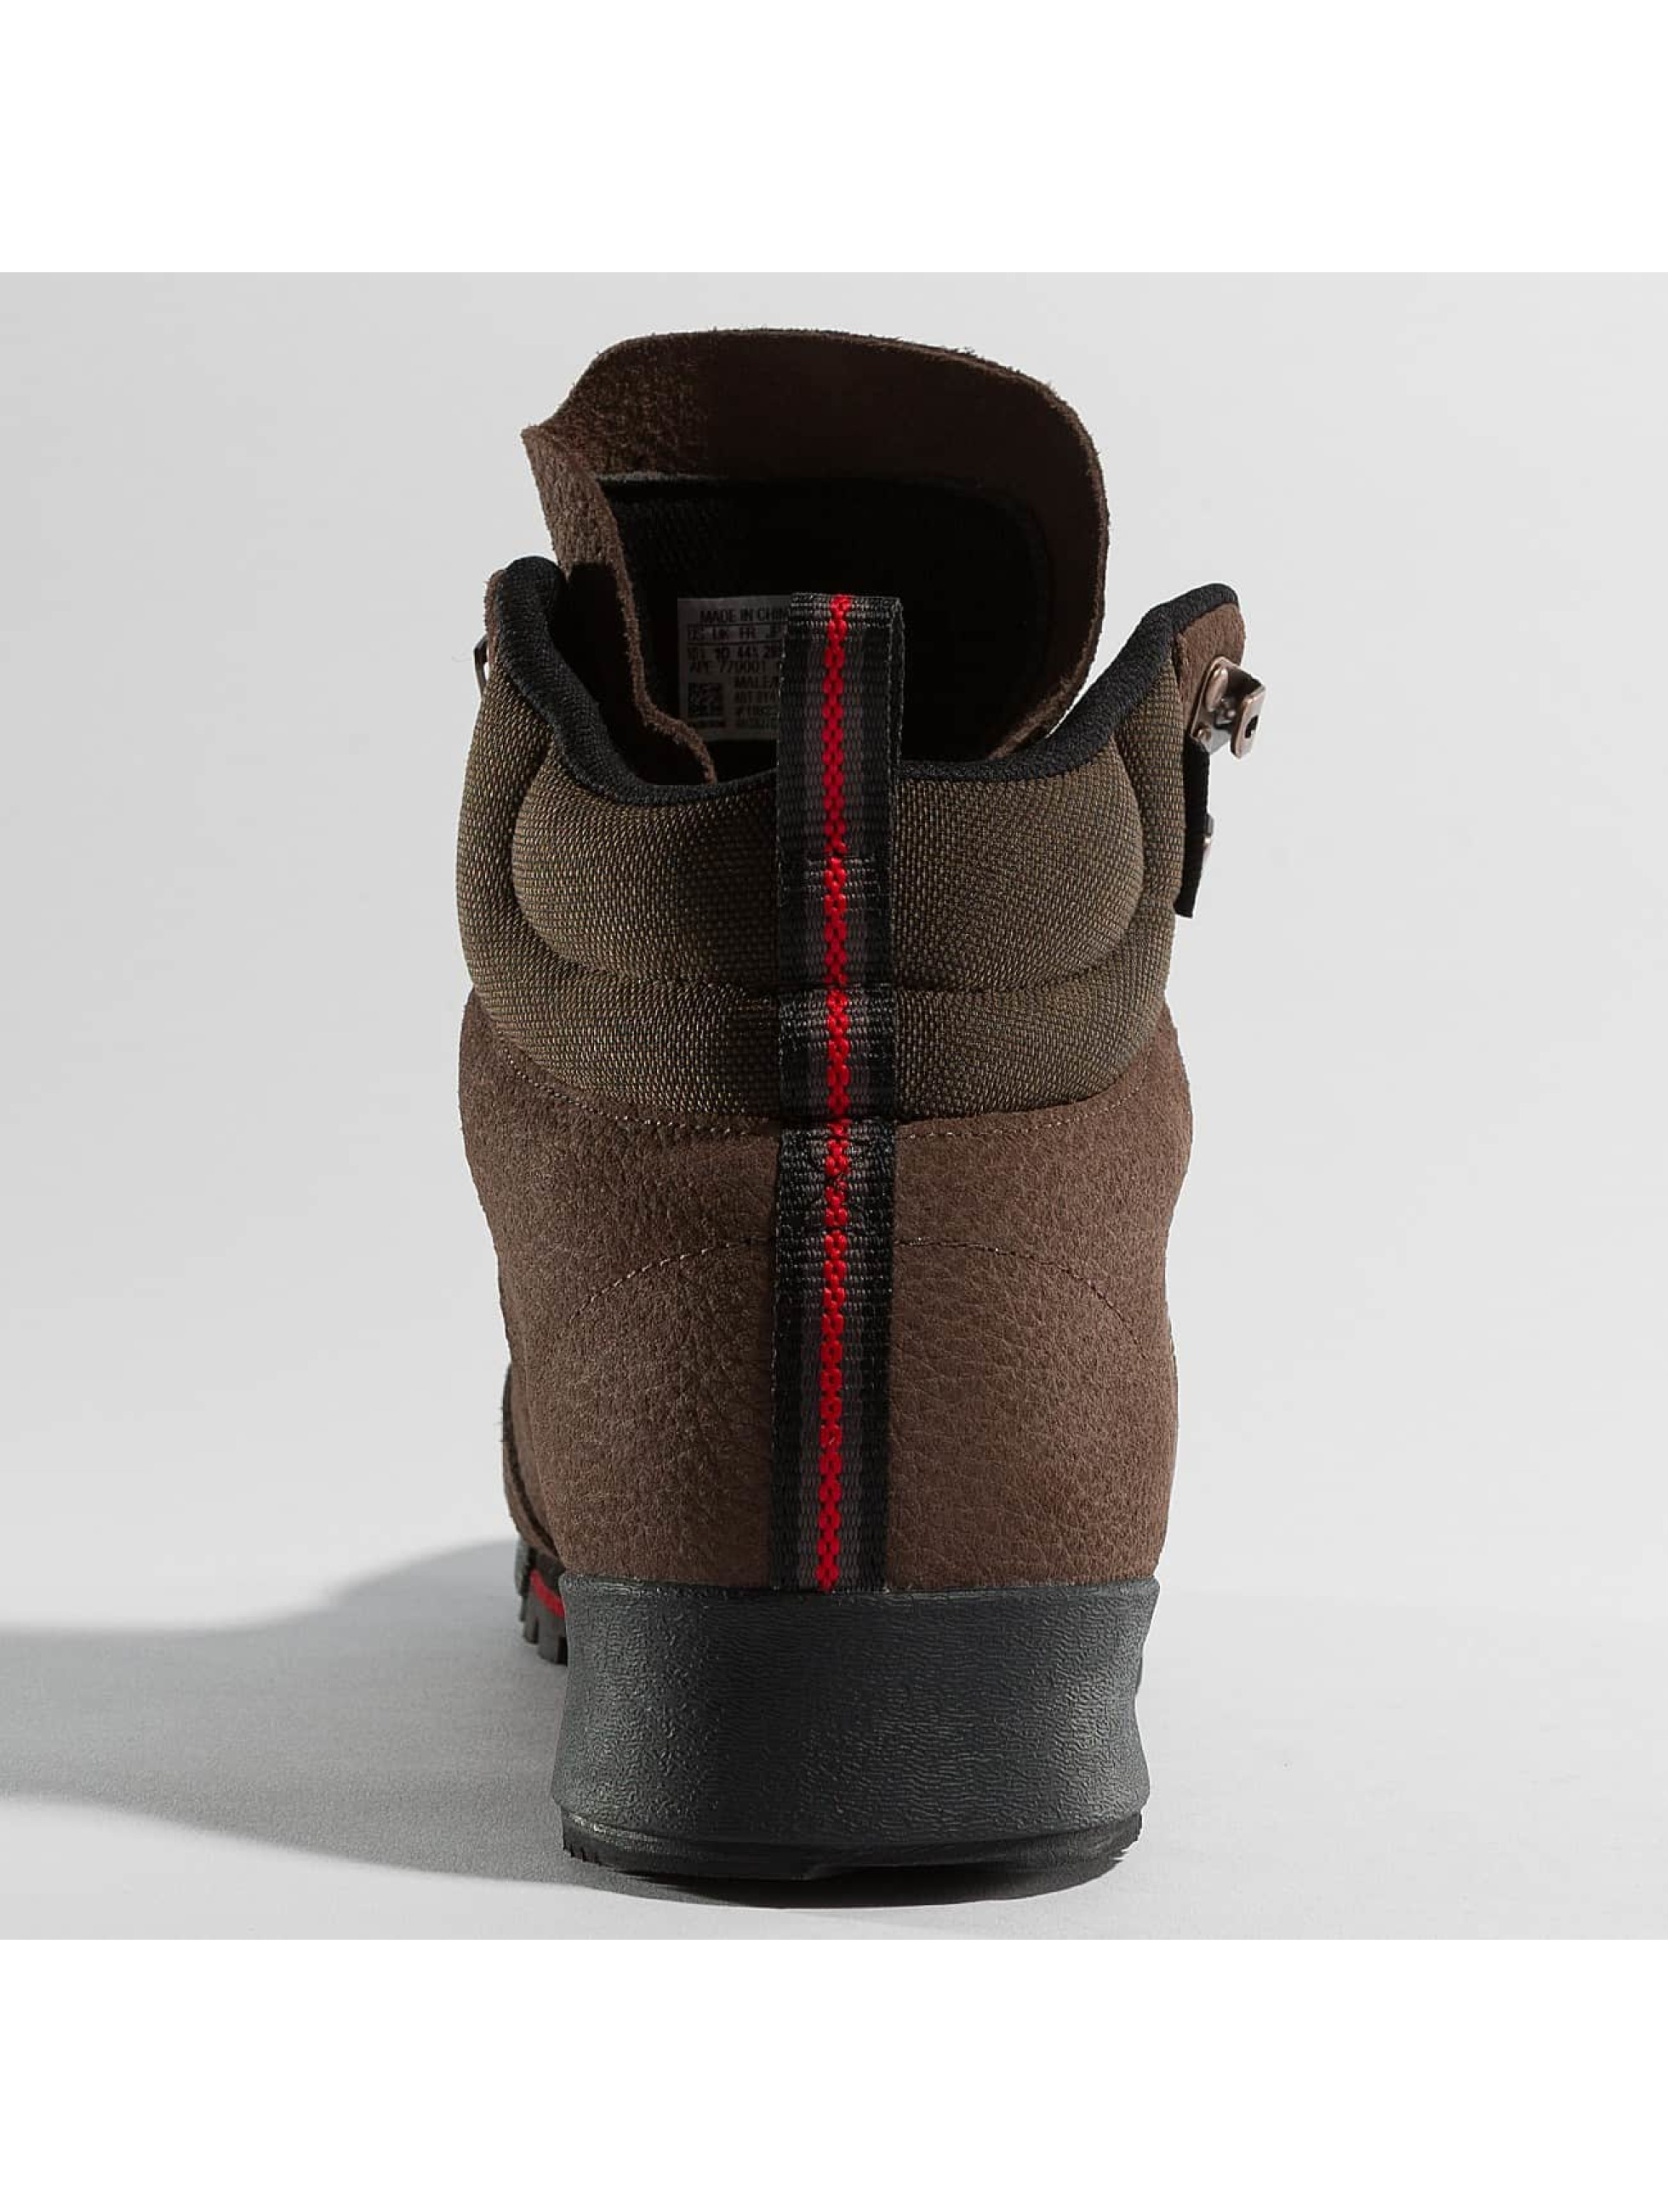 adidas originals Boots Jake 2.0 Boots brown